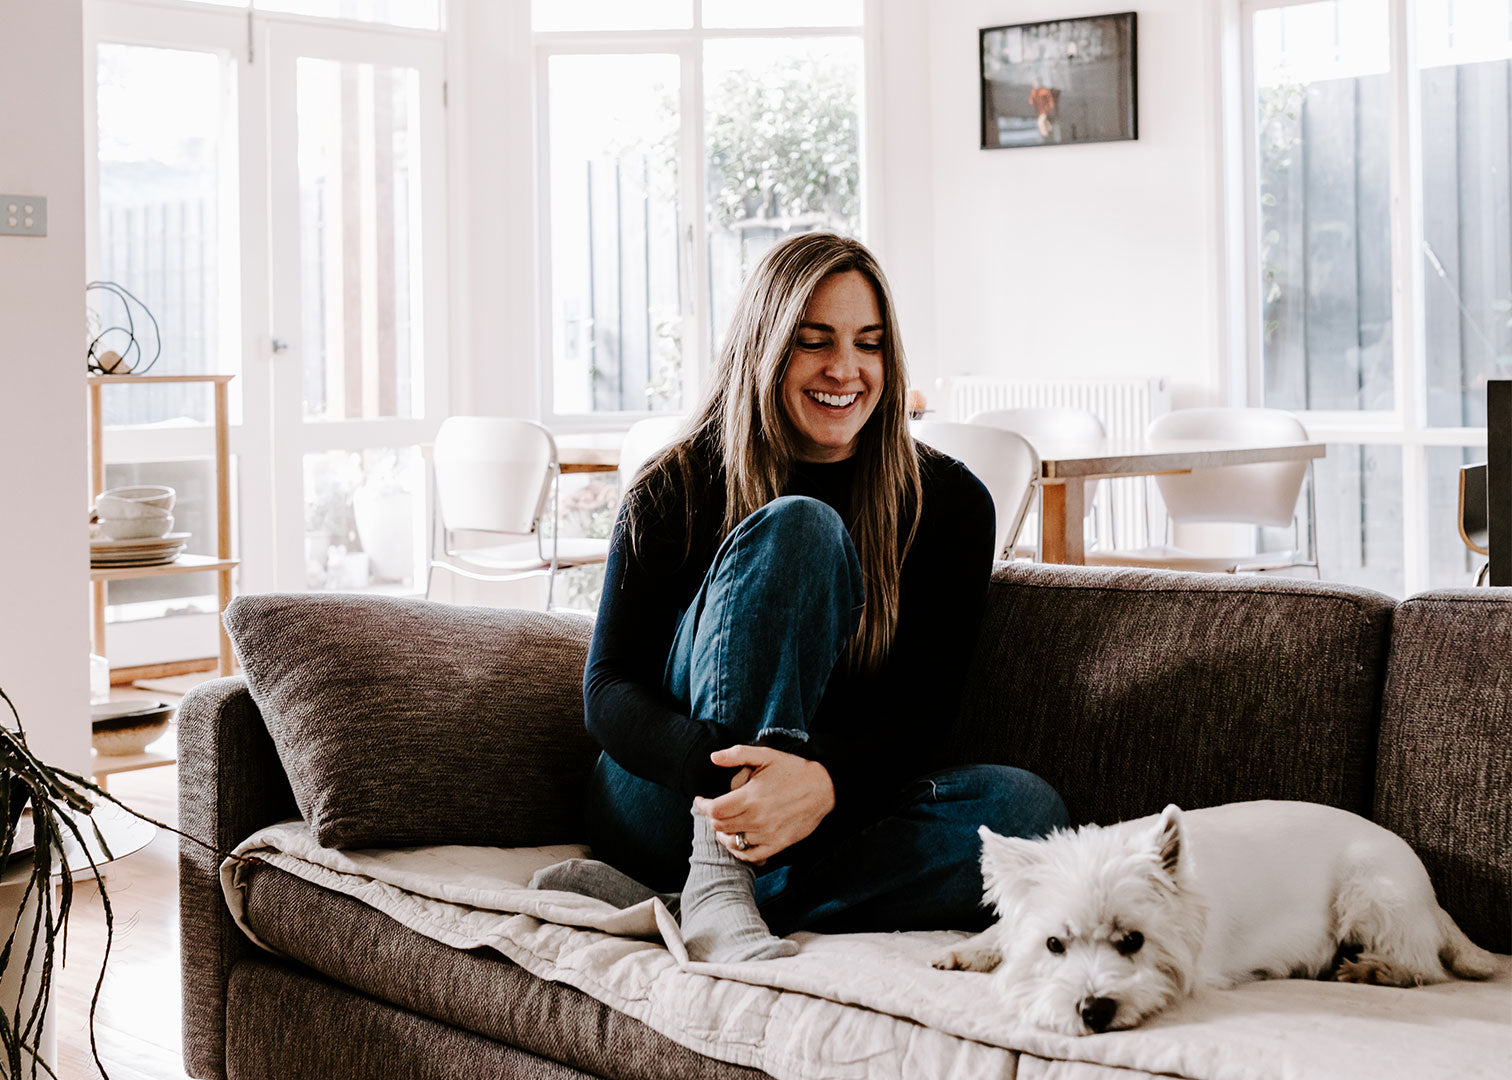 At Home with Elise 1